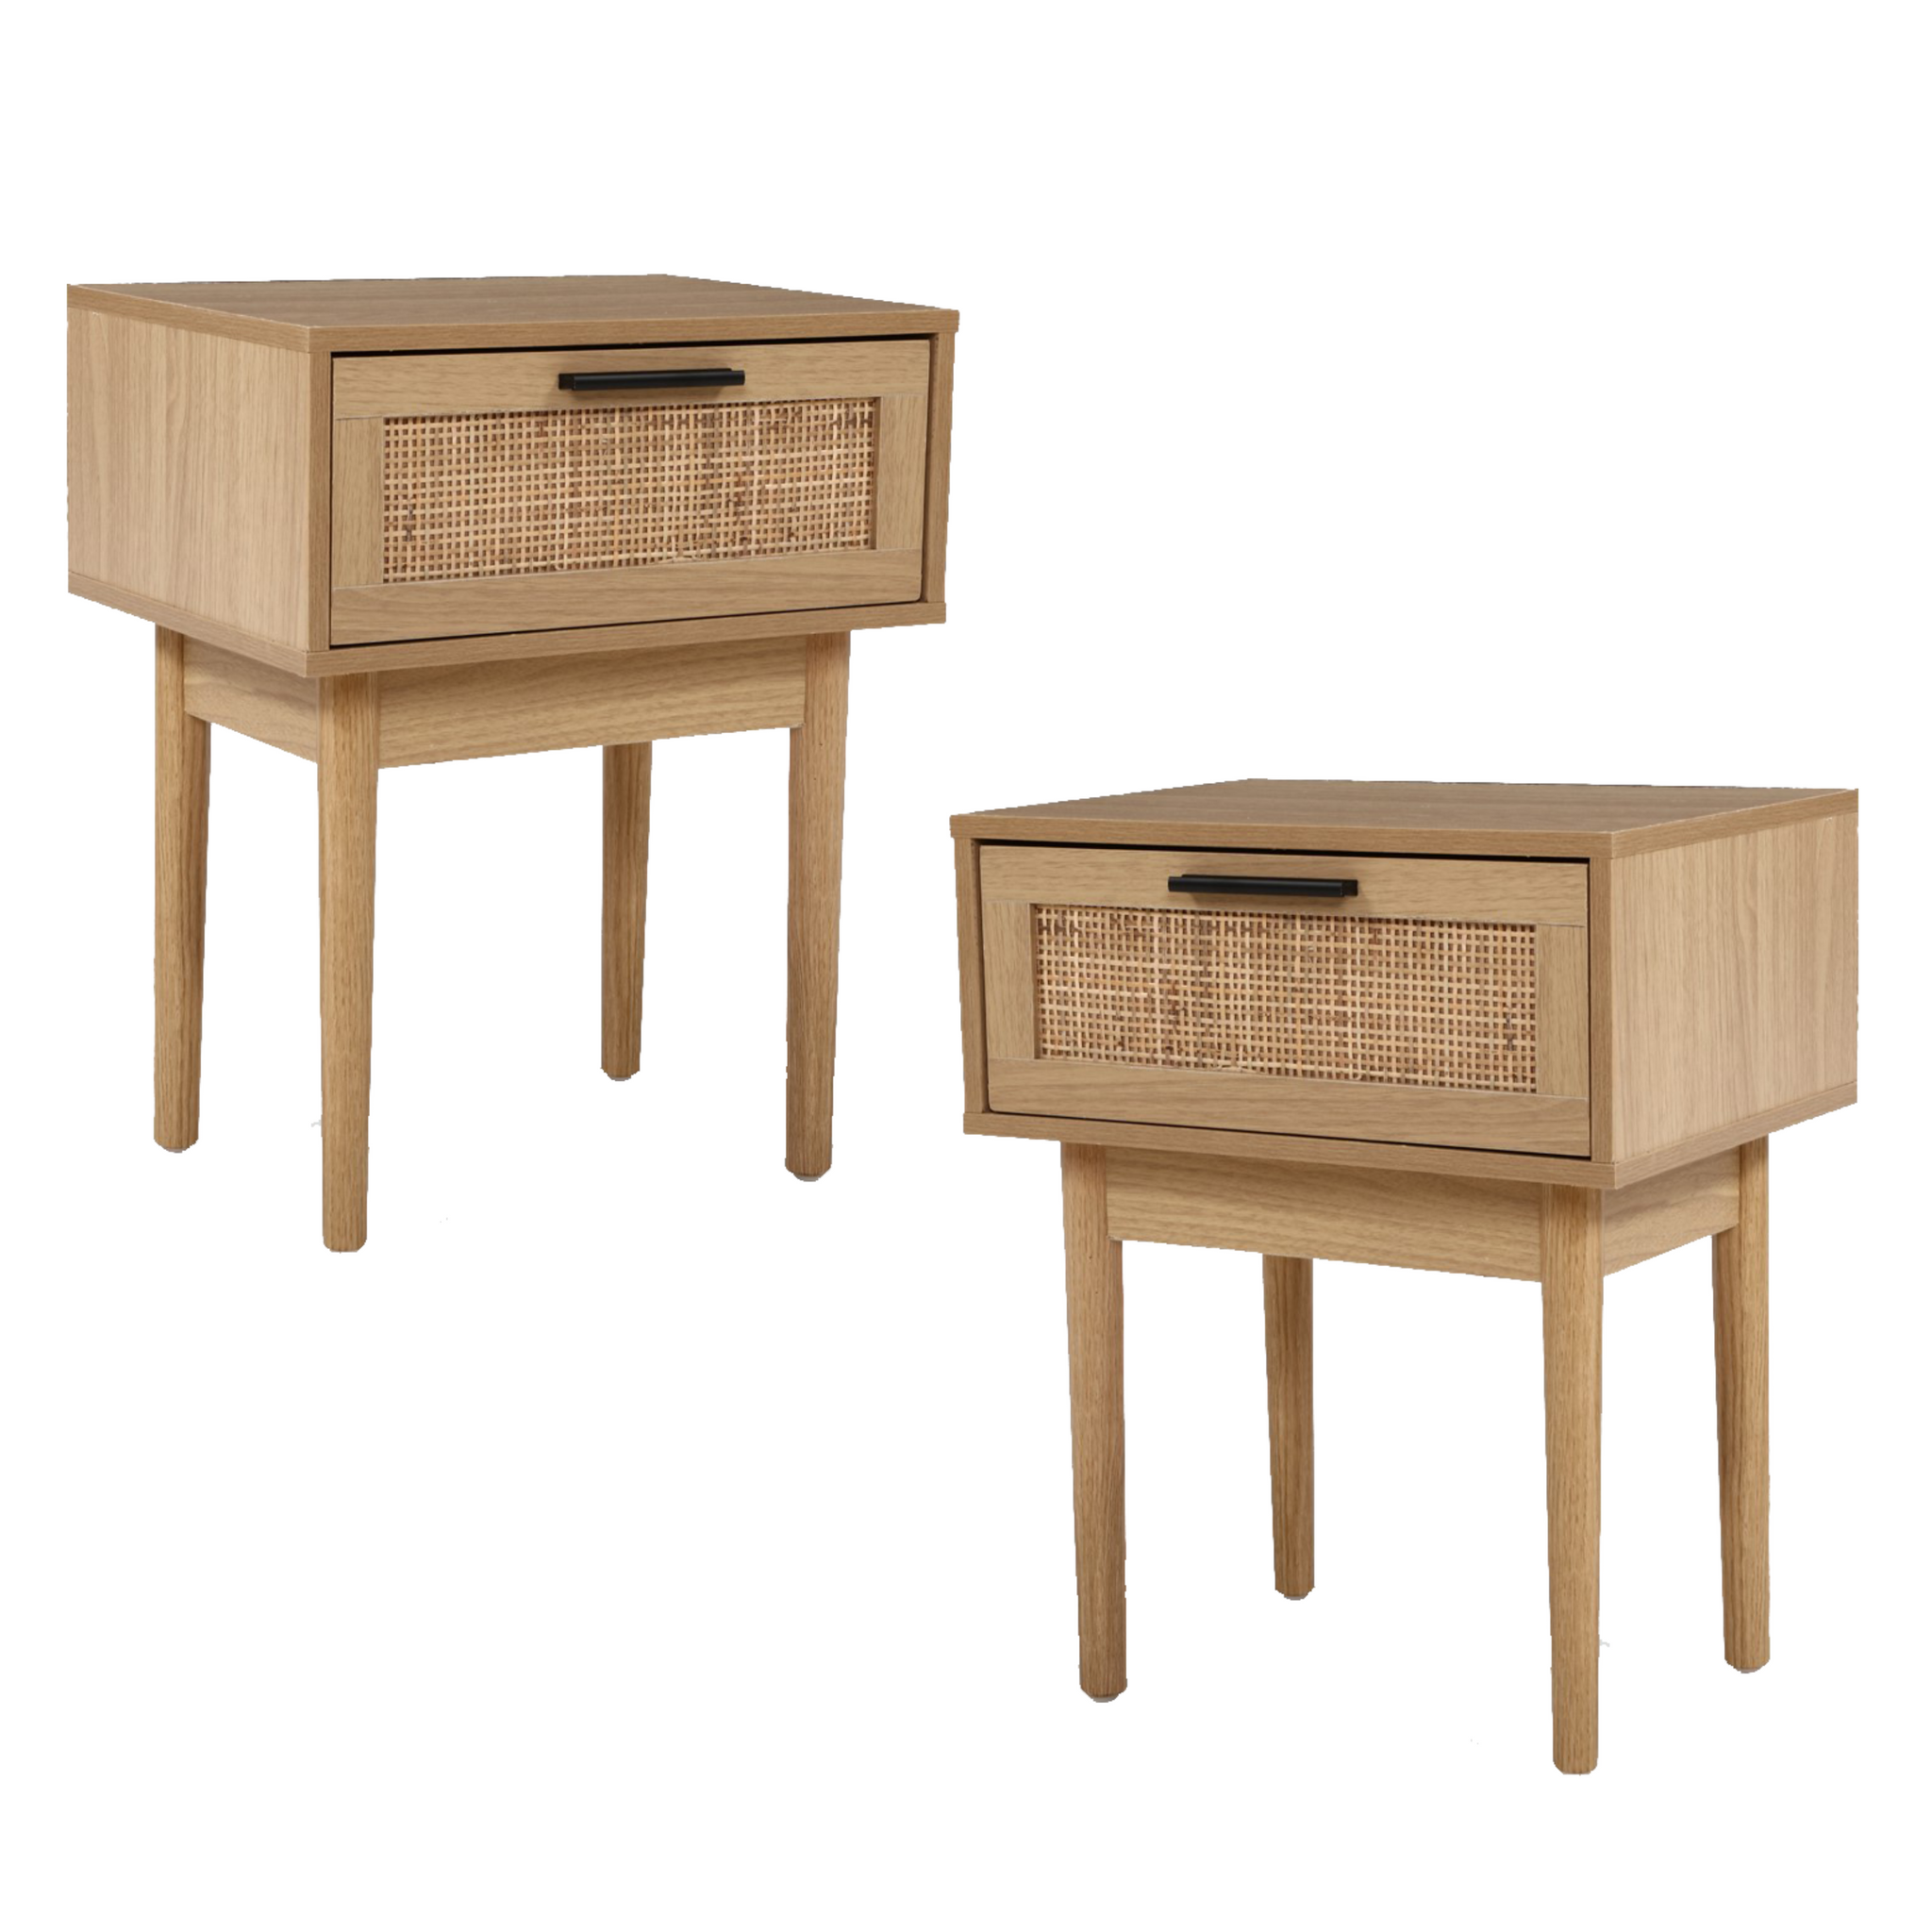 Camilla Rattan Side Tables Set Of 2 J C Homewares Furniture